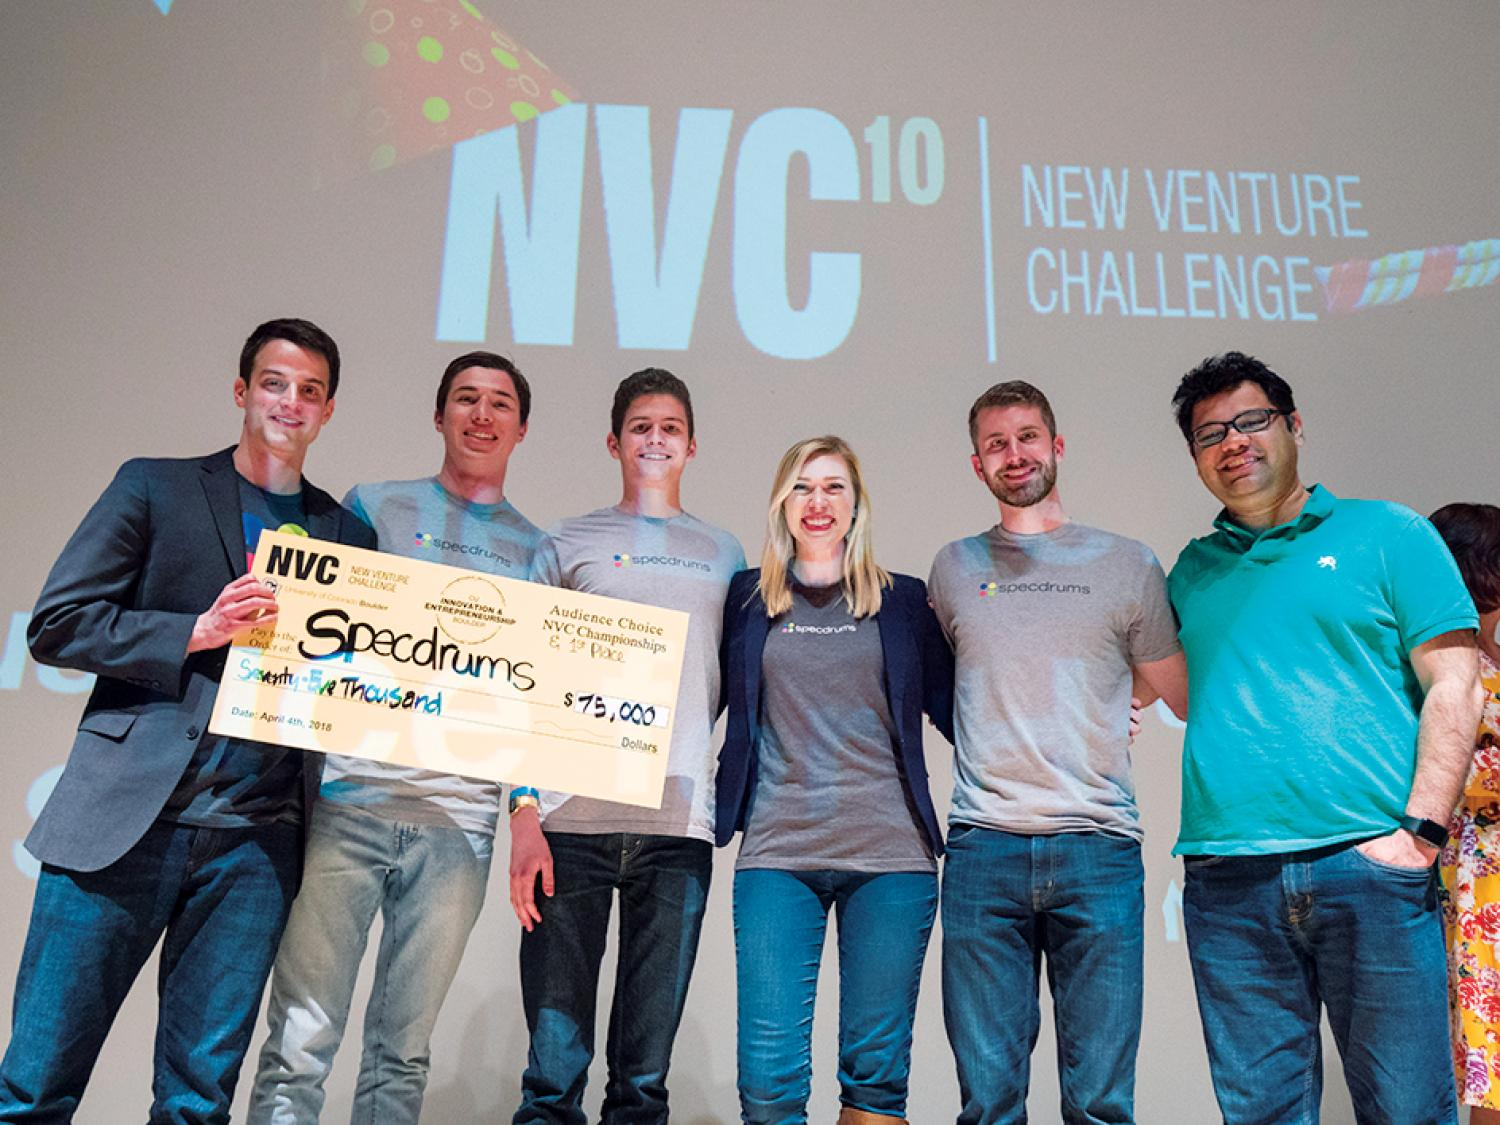 Winning team on stage with prize check